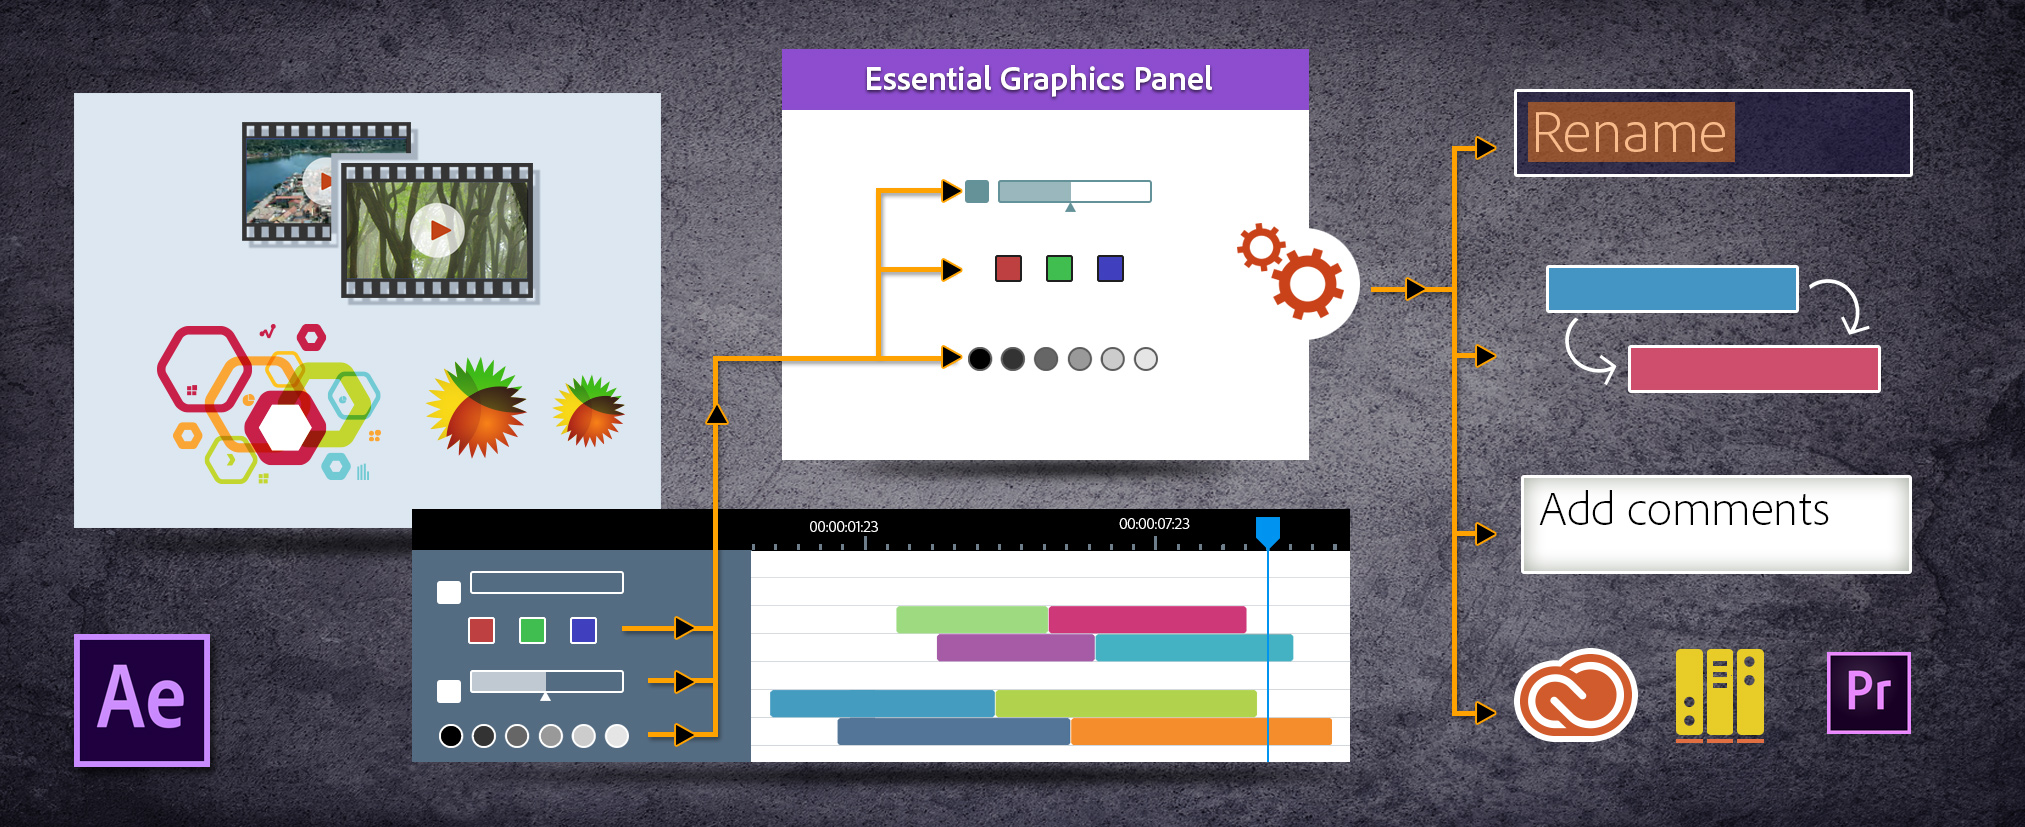 Essential Graphics panel workflow